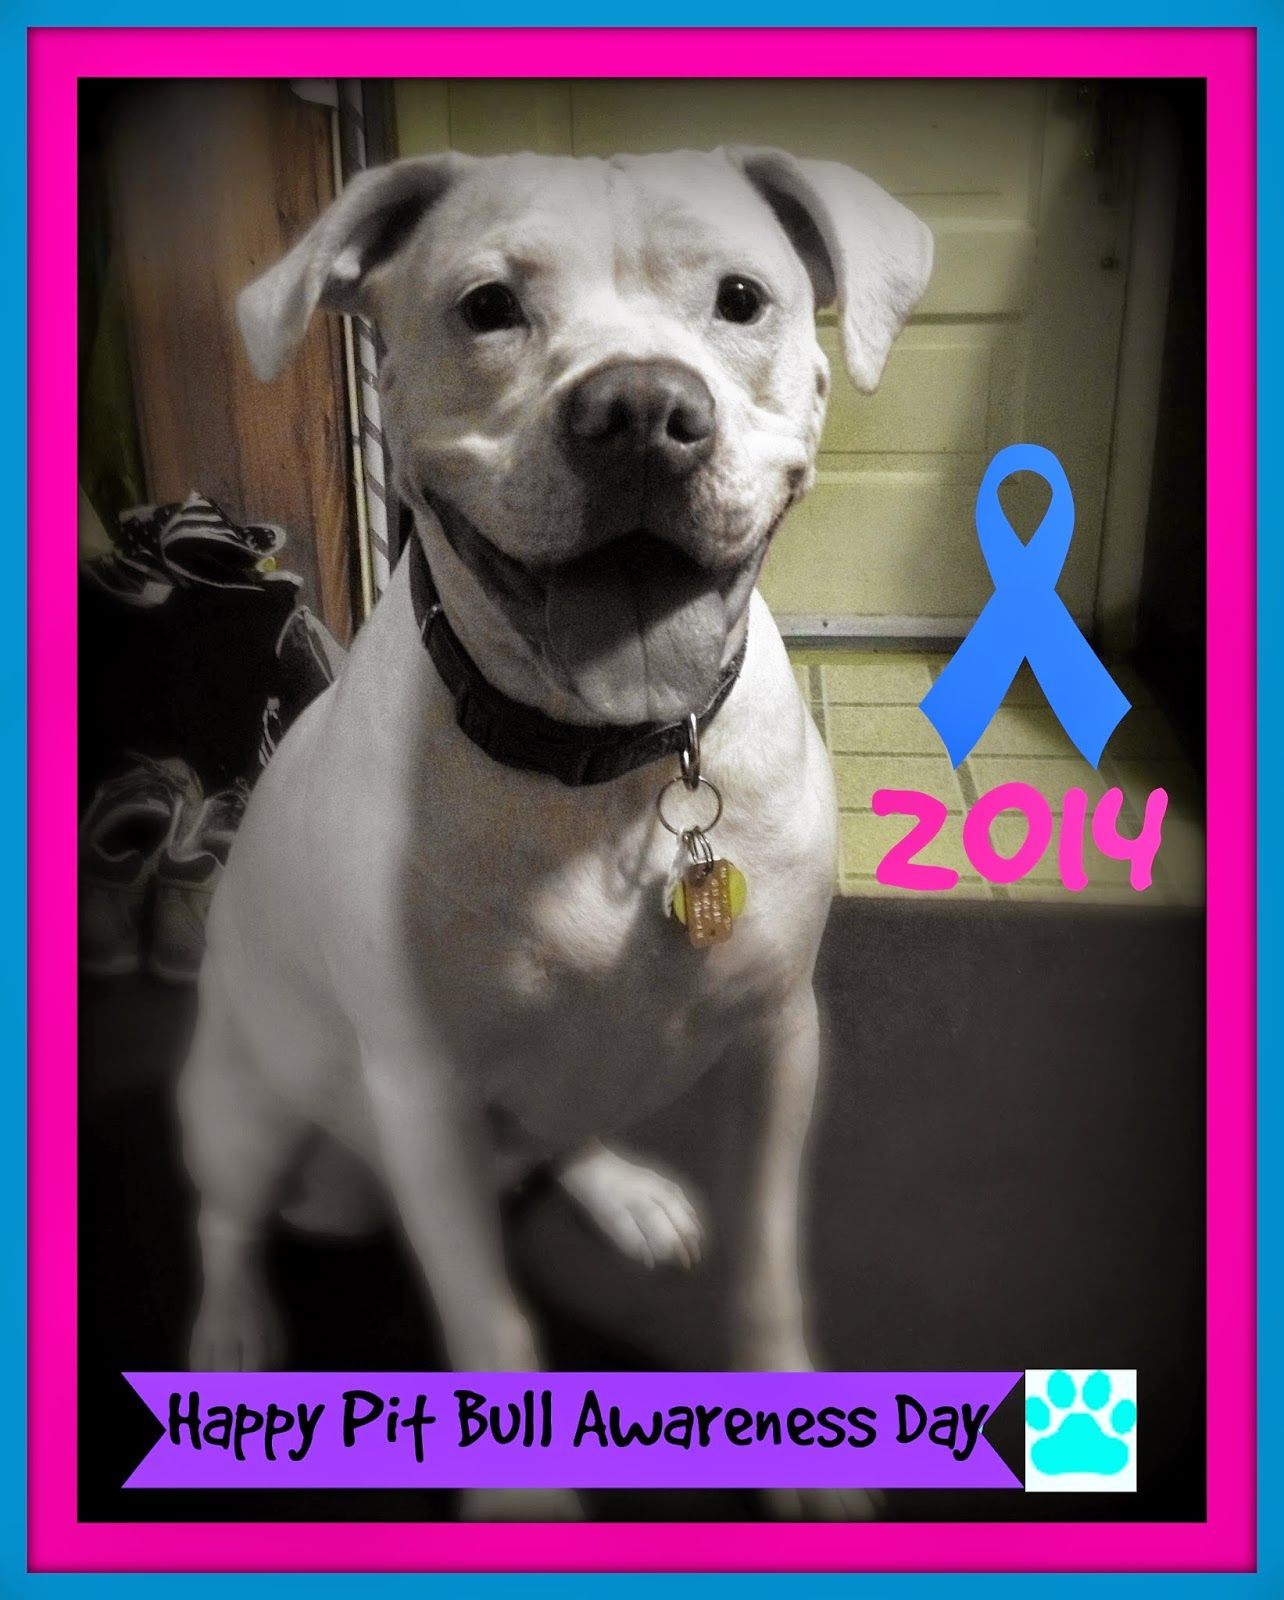 Pearl's Pibbles N Bits: Happy Pit Bull Awareness Day